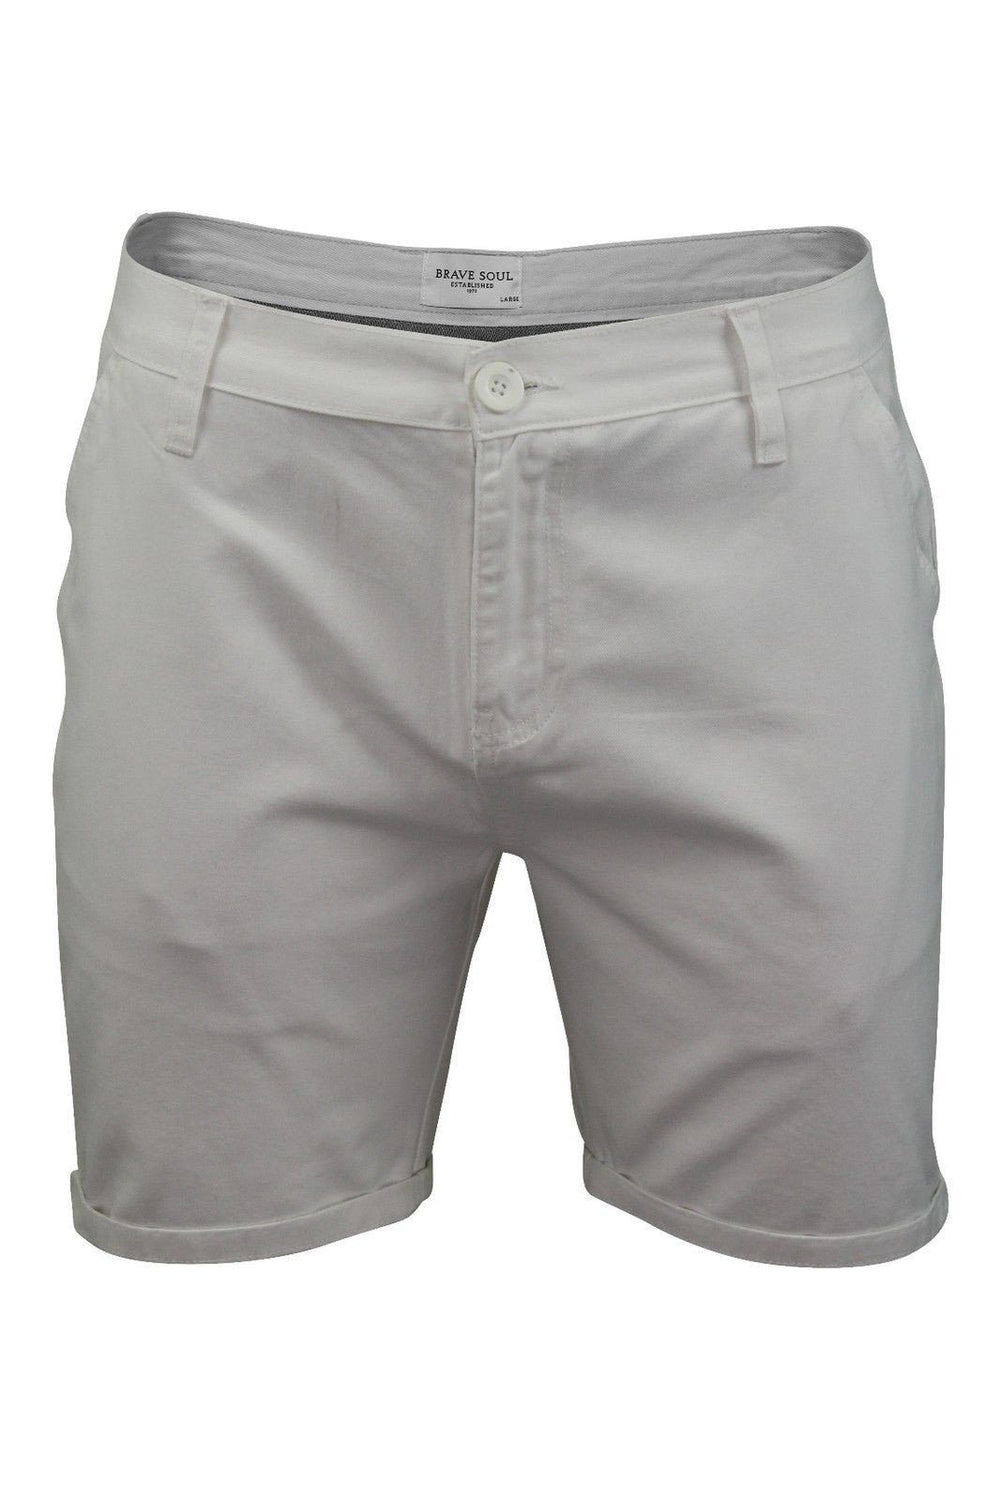 Shorts - O Skinny Chino Shorts White XL